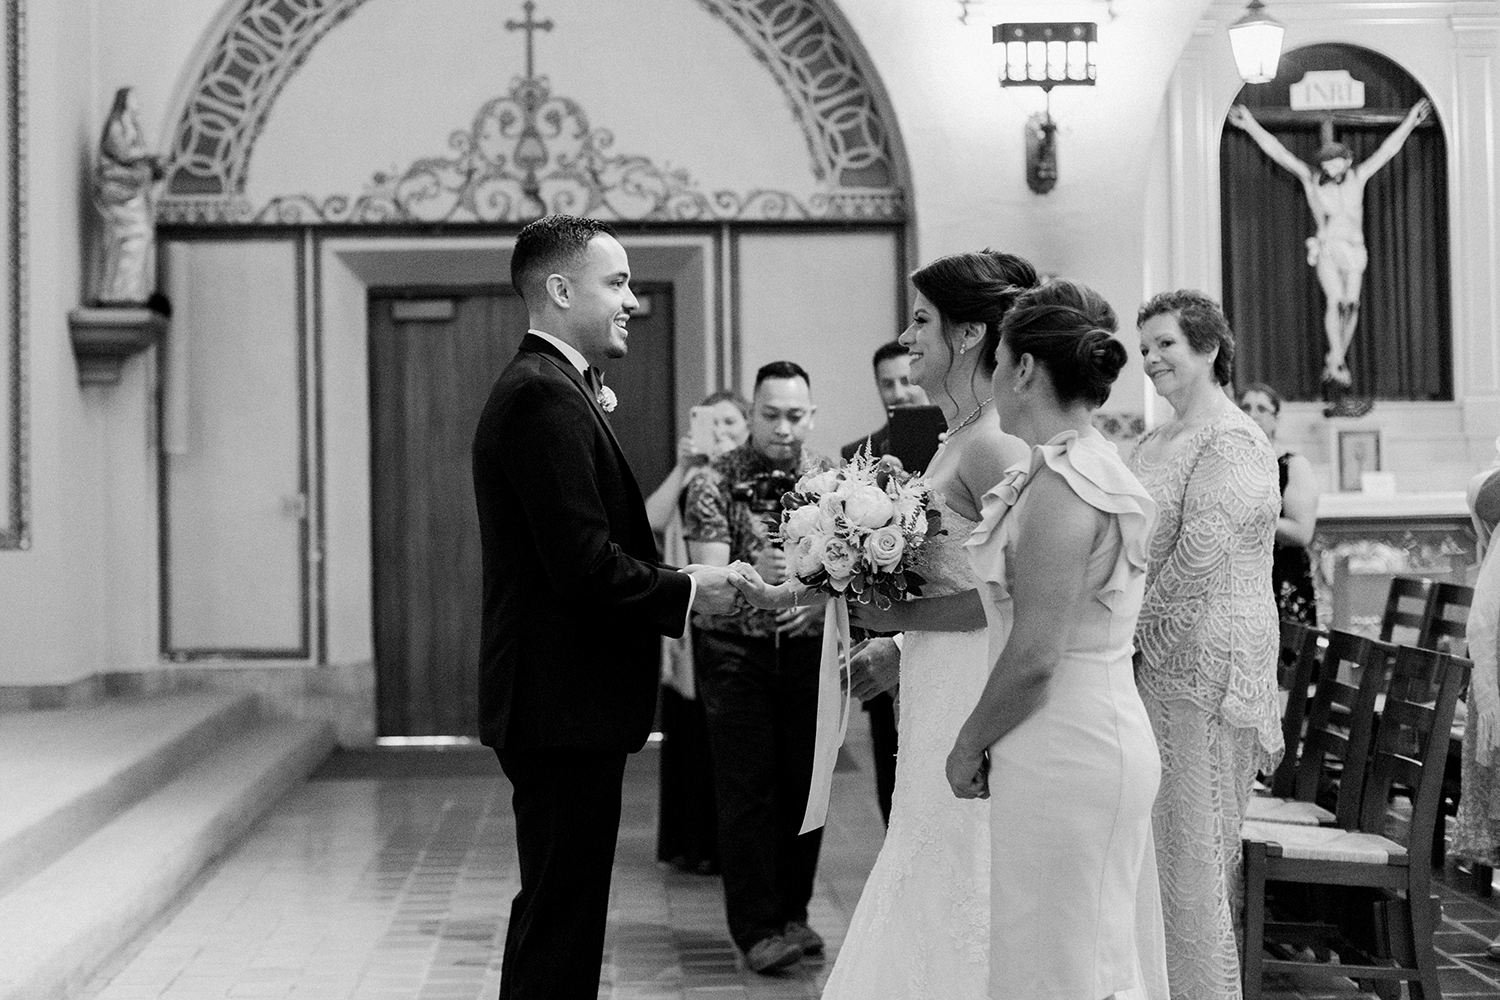 Groom taking his bride to the alter during their wedding in Mission Santa Clara de Asís.